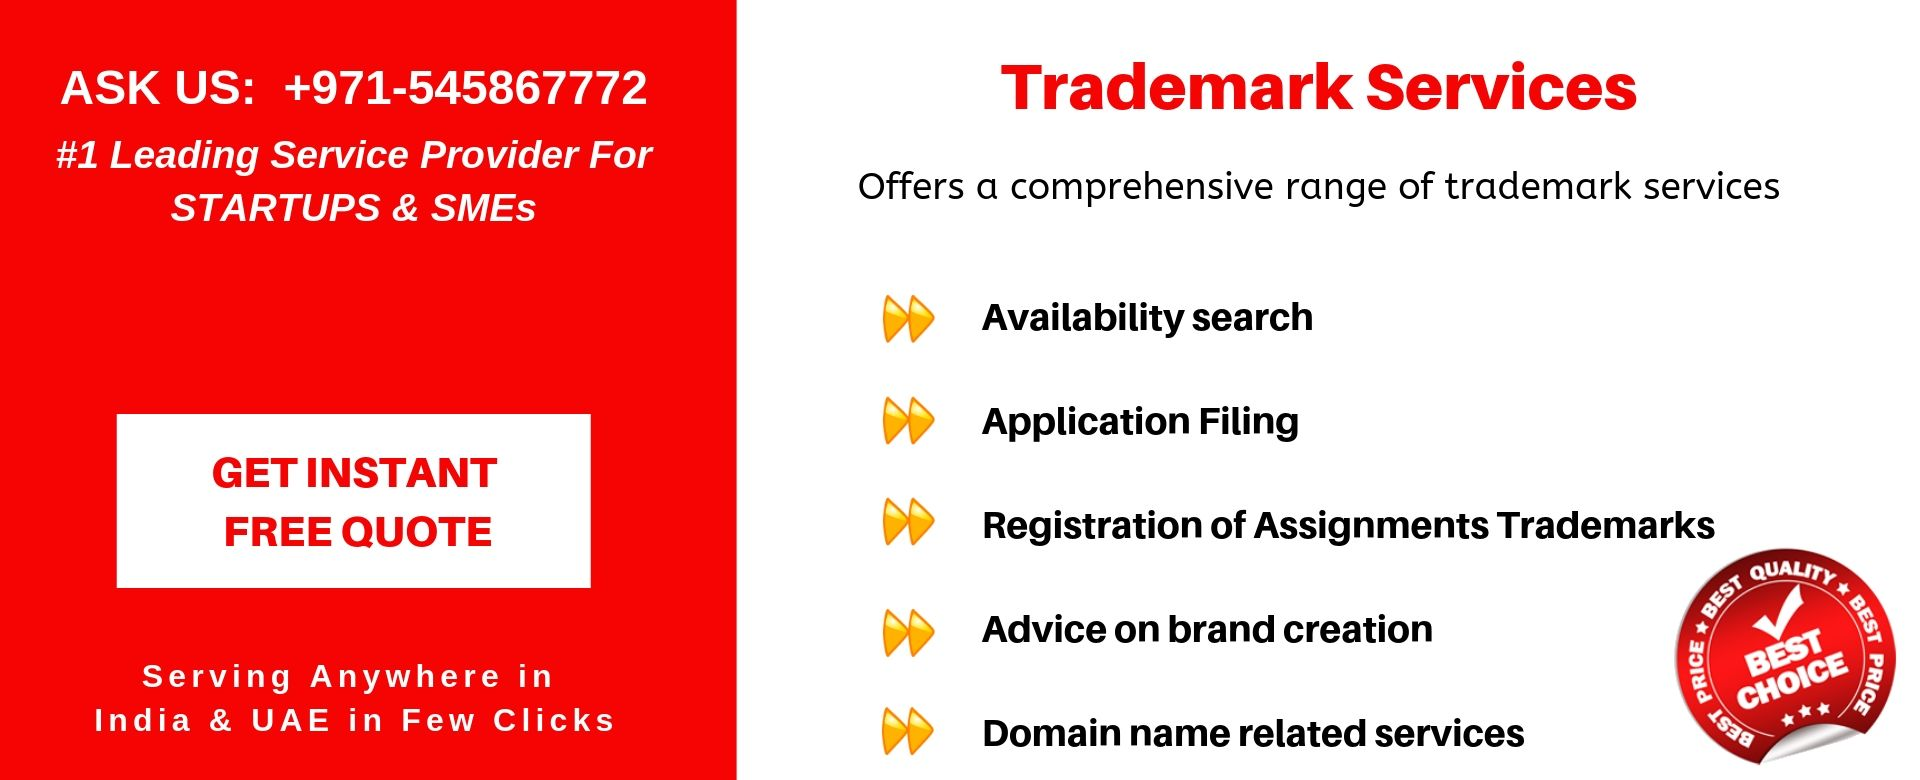 trademark services in uae